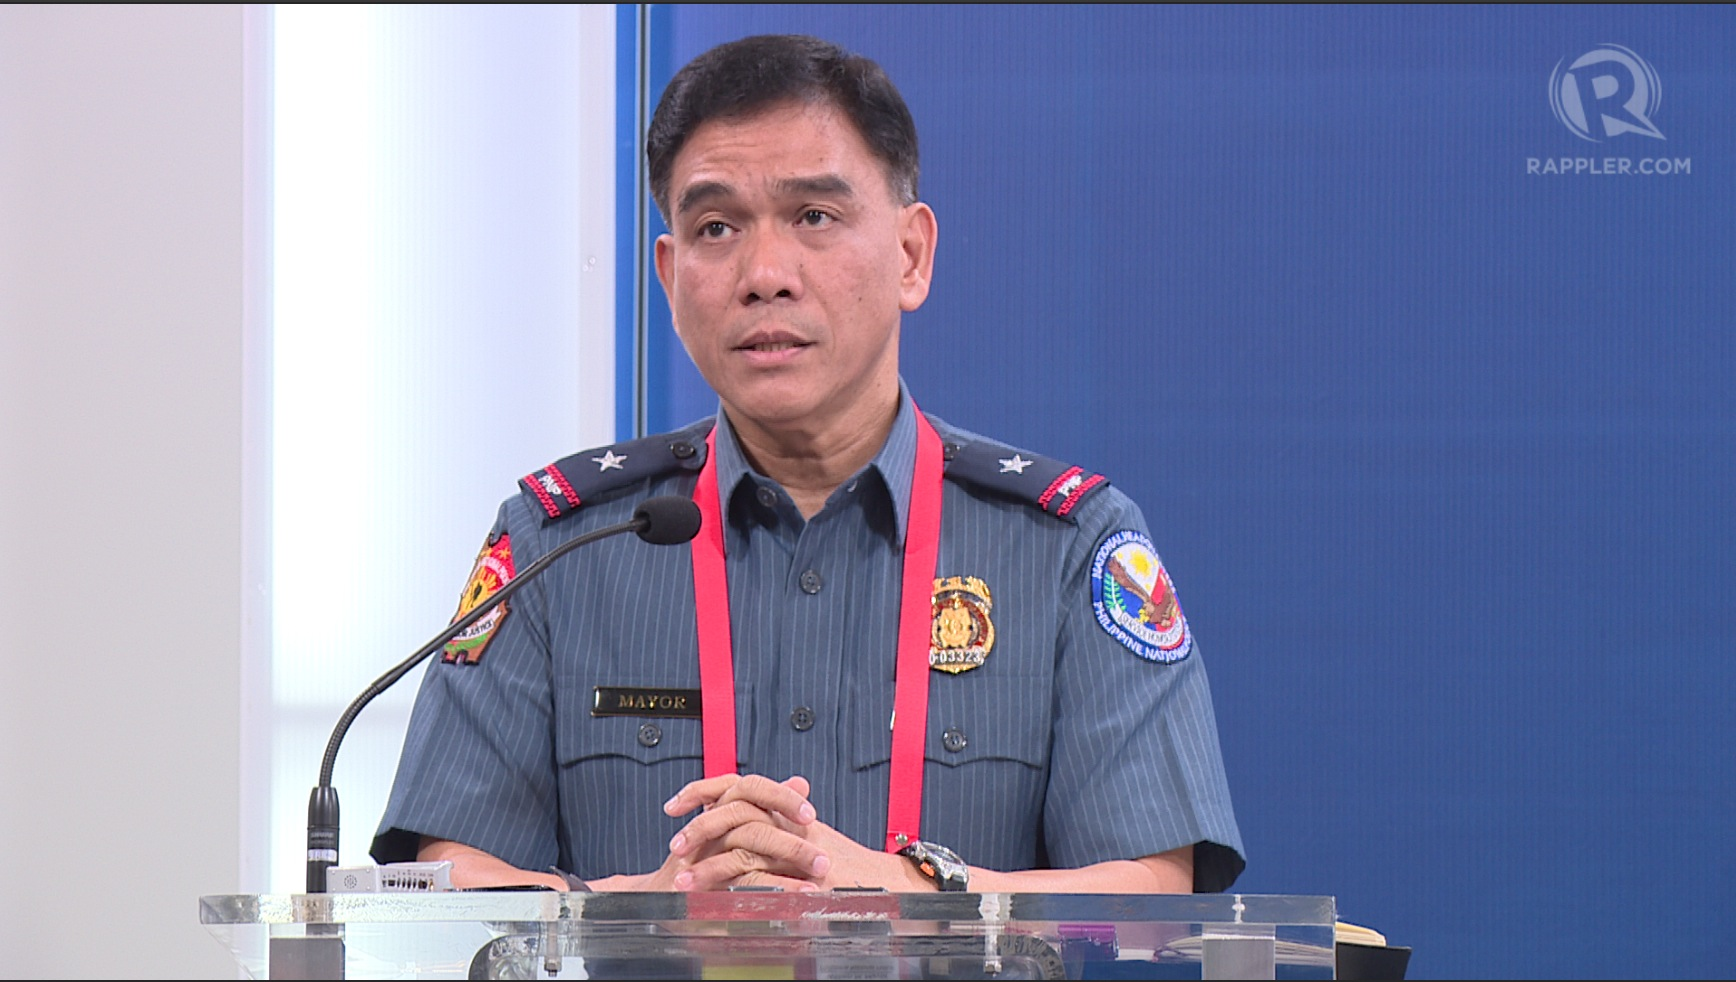 FOR EMERGENCIES ONLY. PNP spokesman Chief Superintendent Wilben Mayor says signal loss to be considered only if u0022really, really necessary.u0022 Rappler screenshot